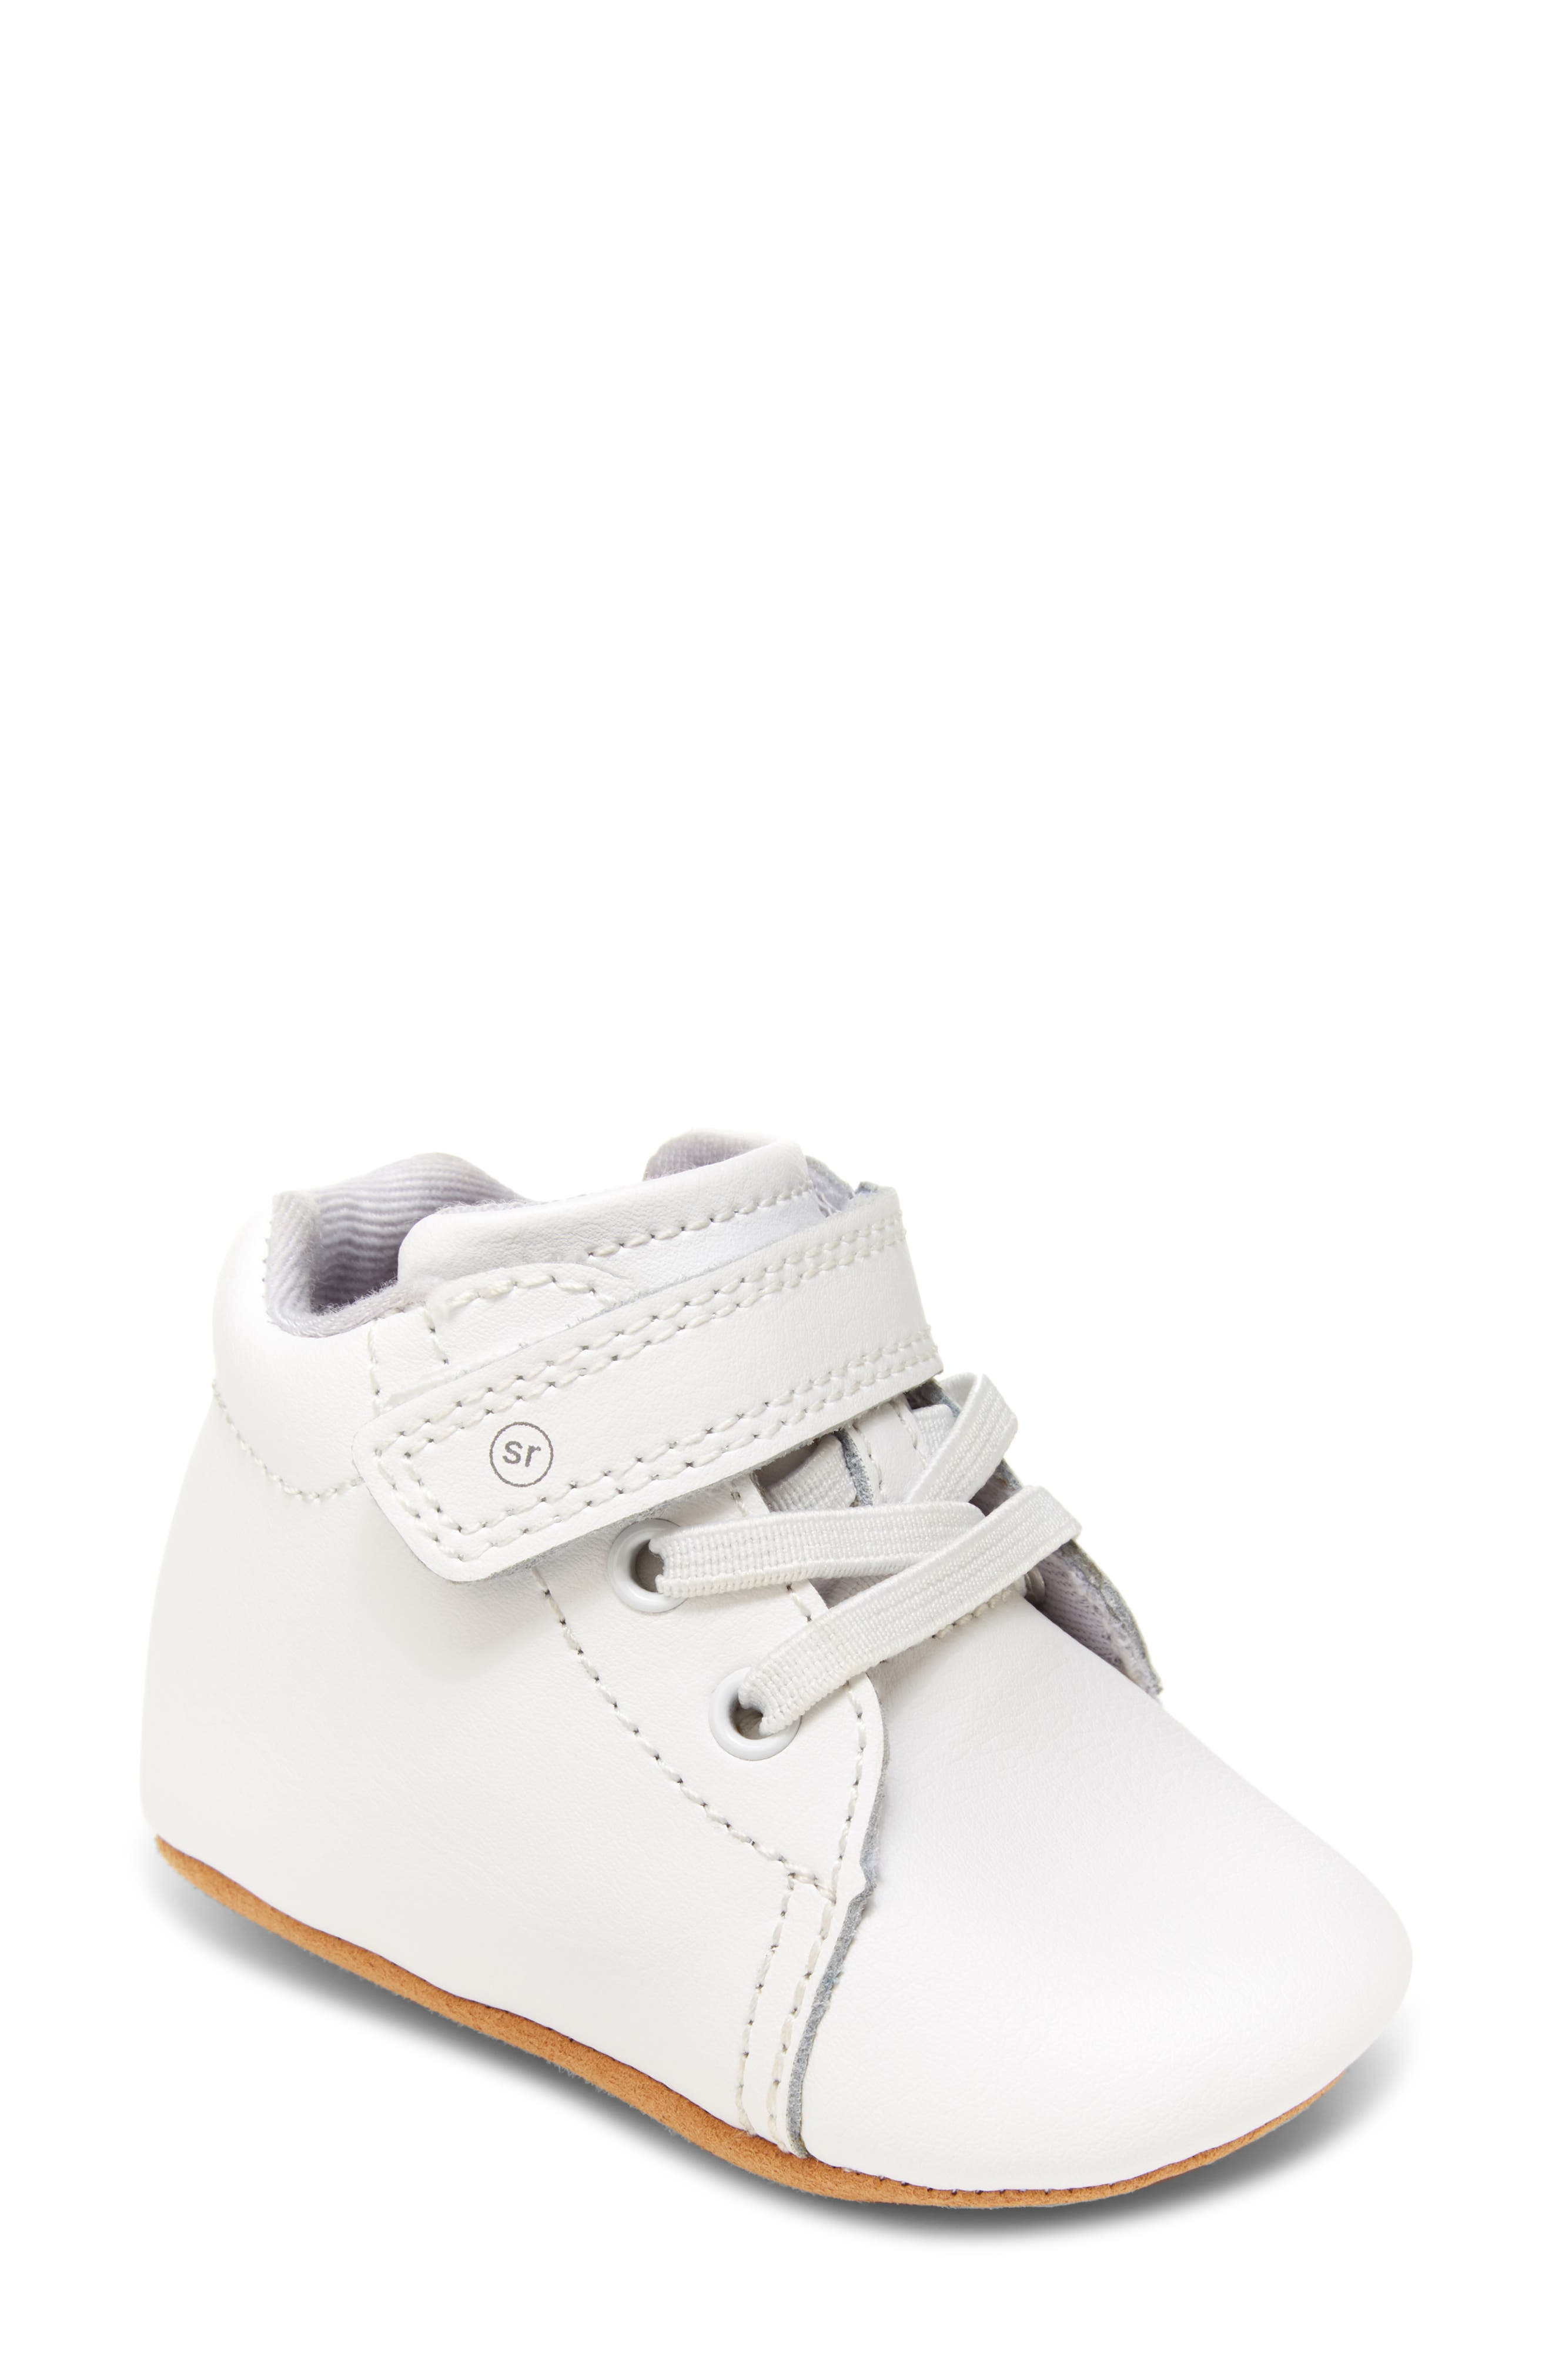 A softly supportive upper with easy, rounded edges keeps baby comfortably supported while taking those tentative first steps. A nonslip brand logo on the textile sole helps keep your little one confidently striding. Style Name: Stride Rite Elliot Bootie (Baby). Style Number: 6169760. Available in stores.